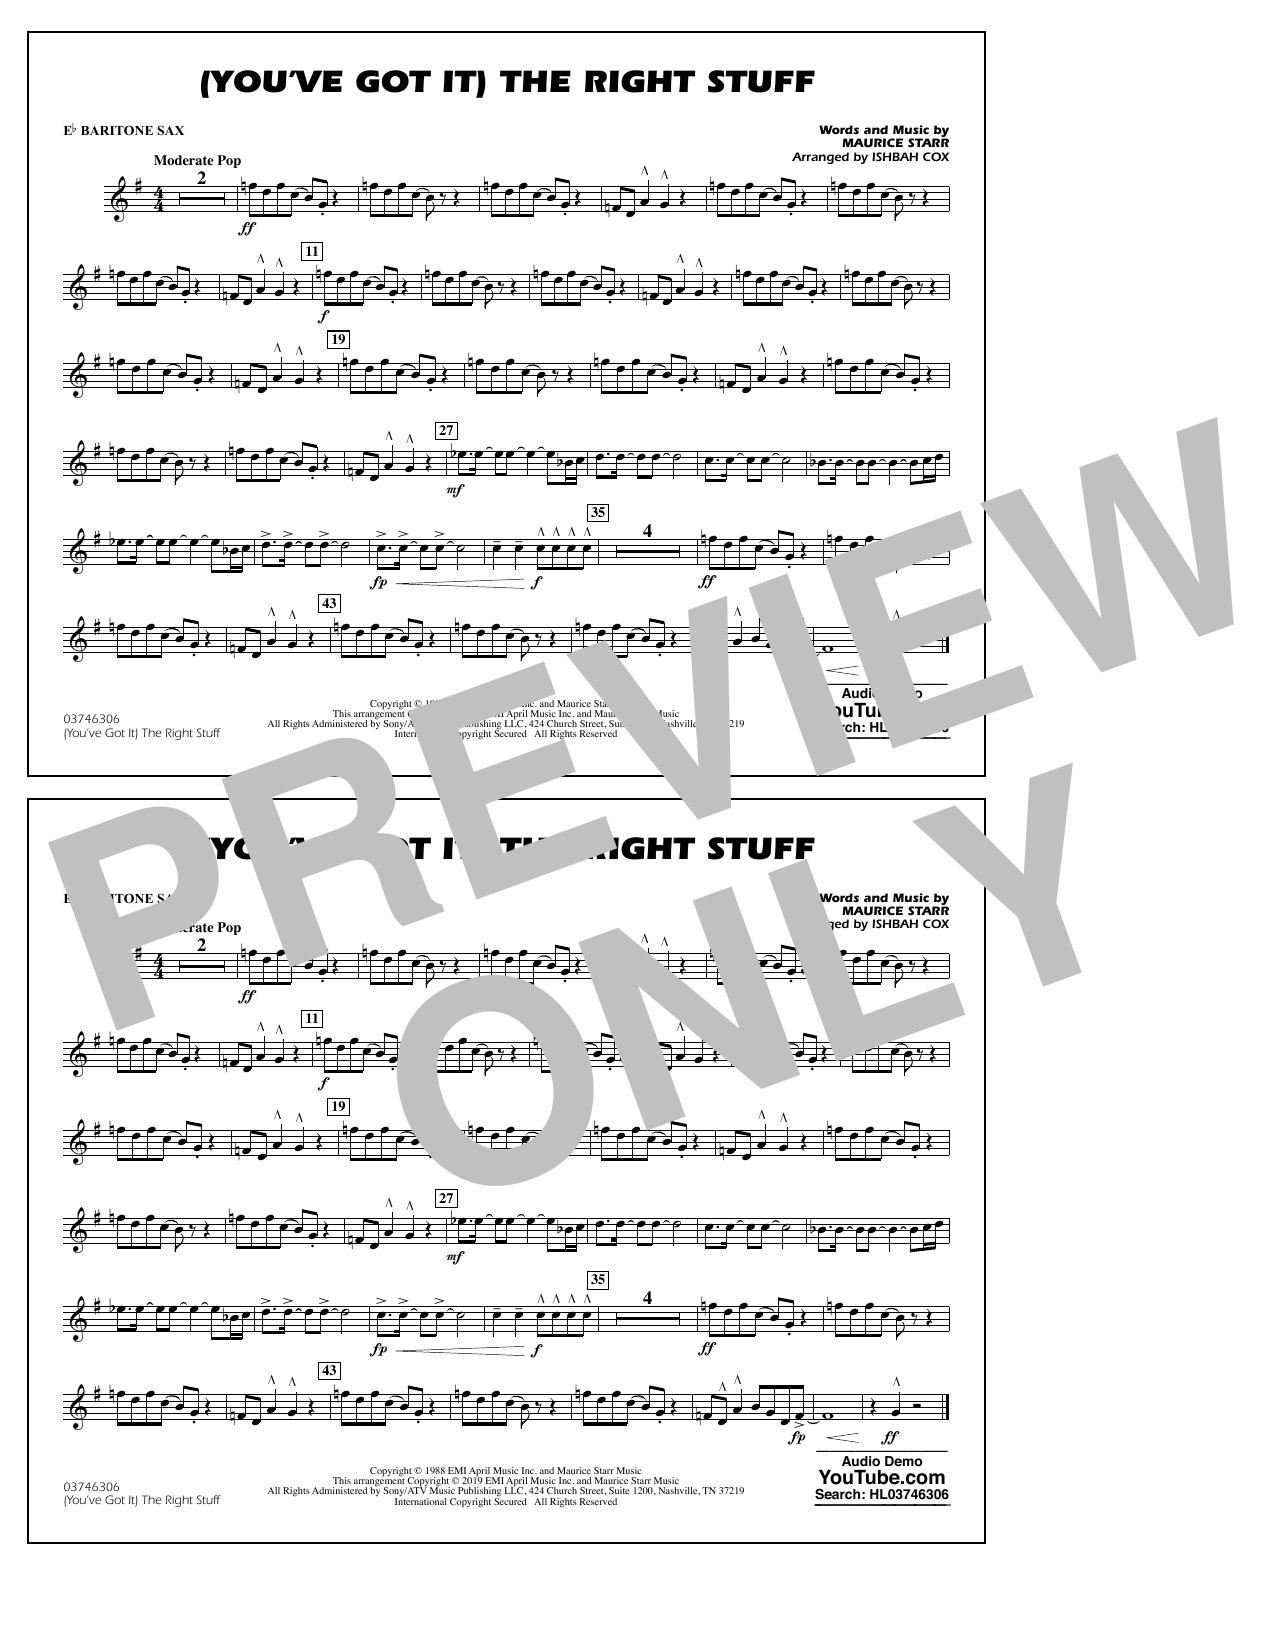 New Kids On The Block (You've Got It) The Right Stuff (arr. Ishbah Cox) - Eb Baritone Sax sheet music preview music notes and score for Marching Band including 1 page(s)